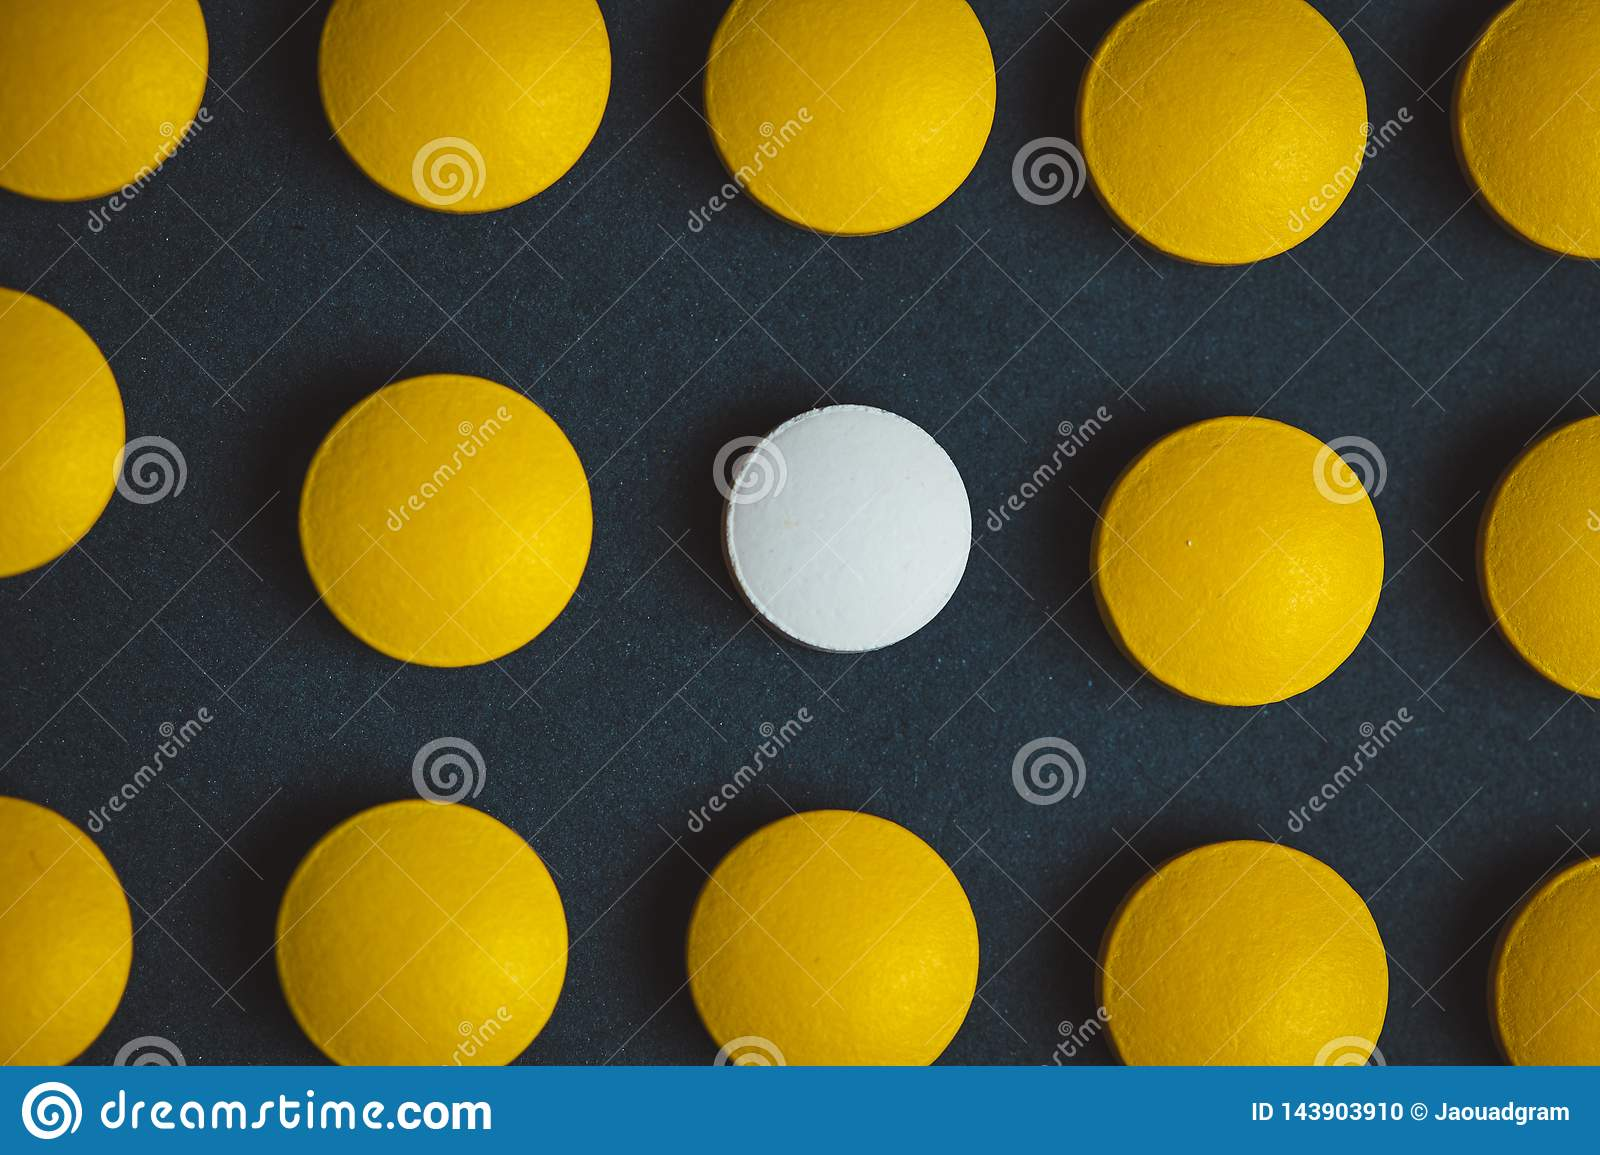 Unique white medicine pill among many yellow ones. Stand out of a crowd, individuality and difference concept. Leadership concept